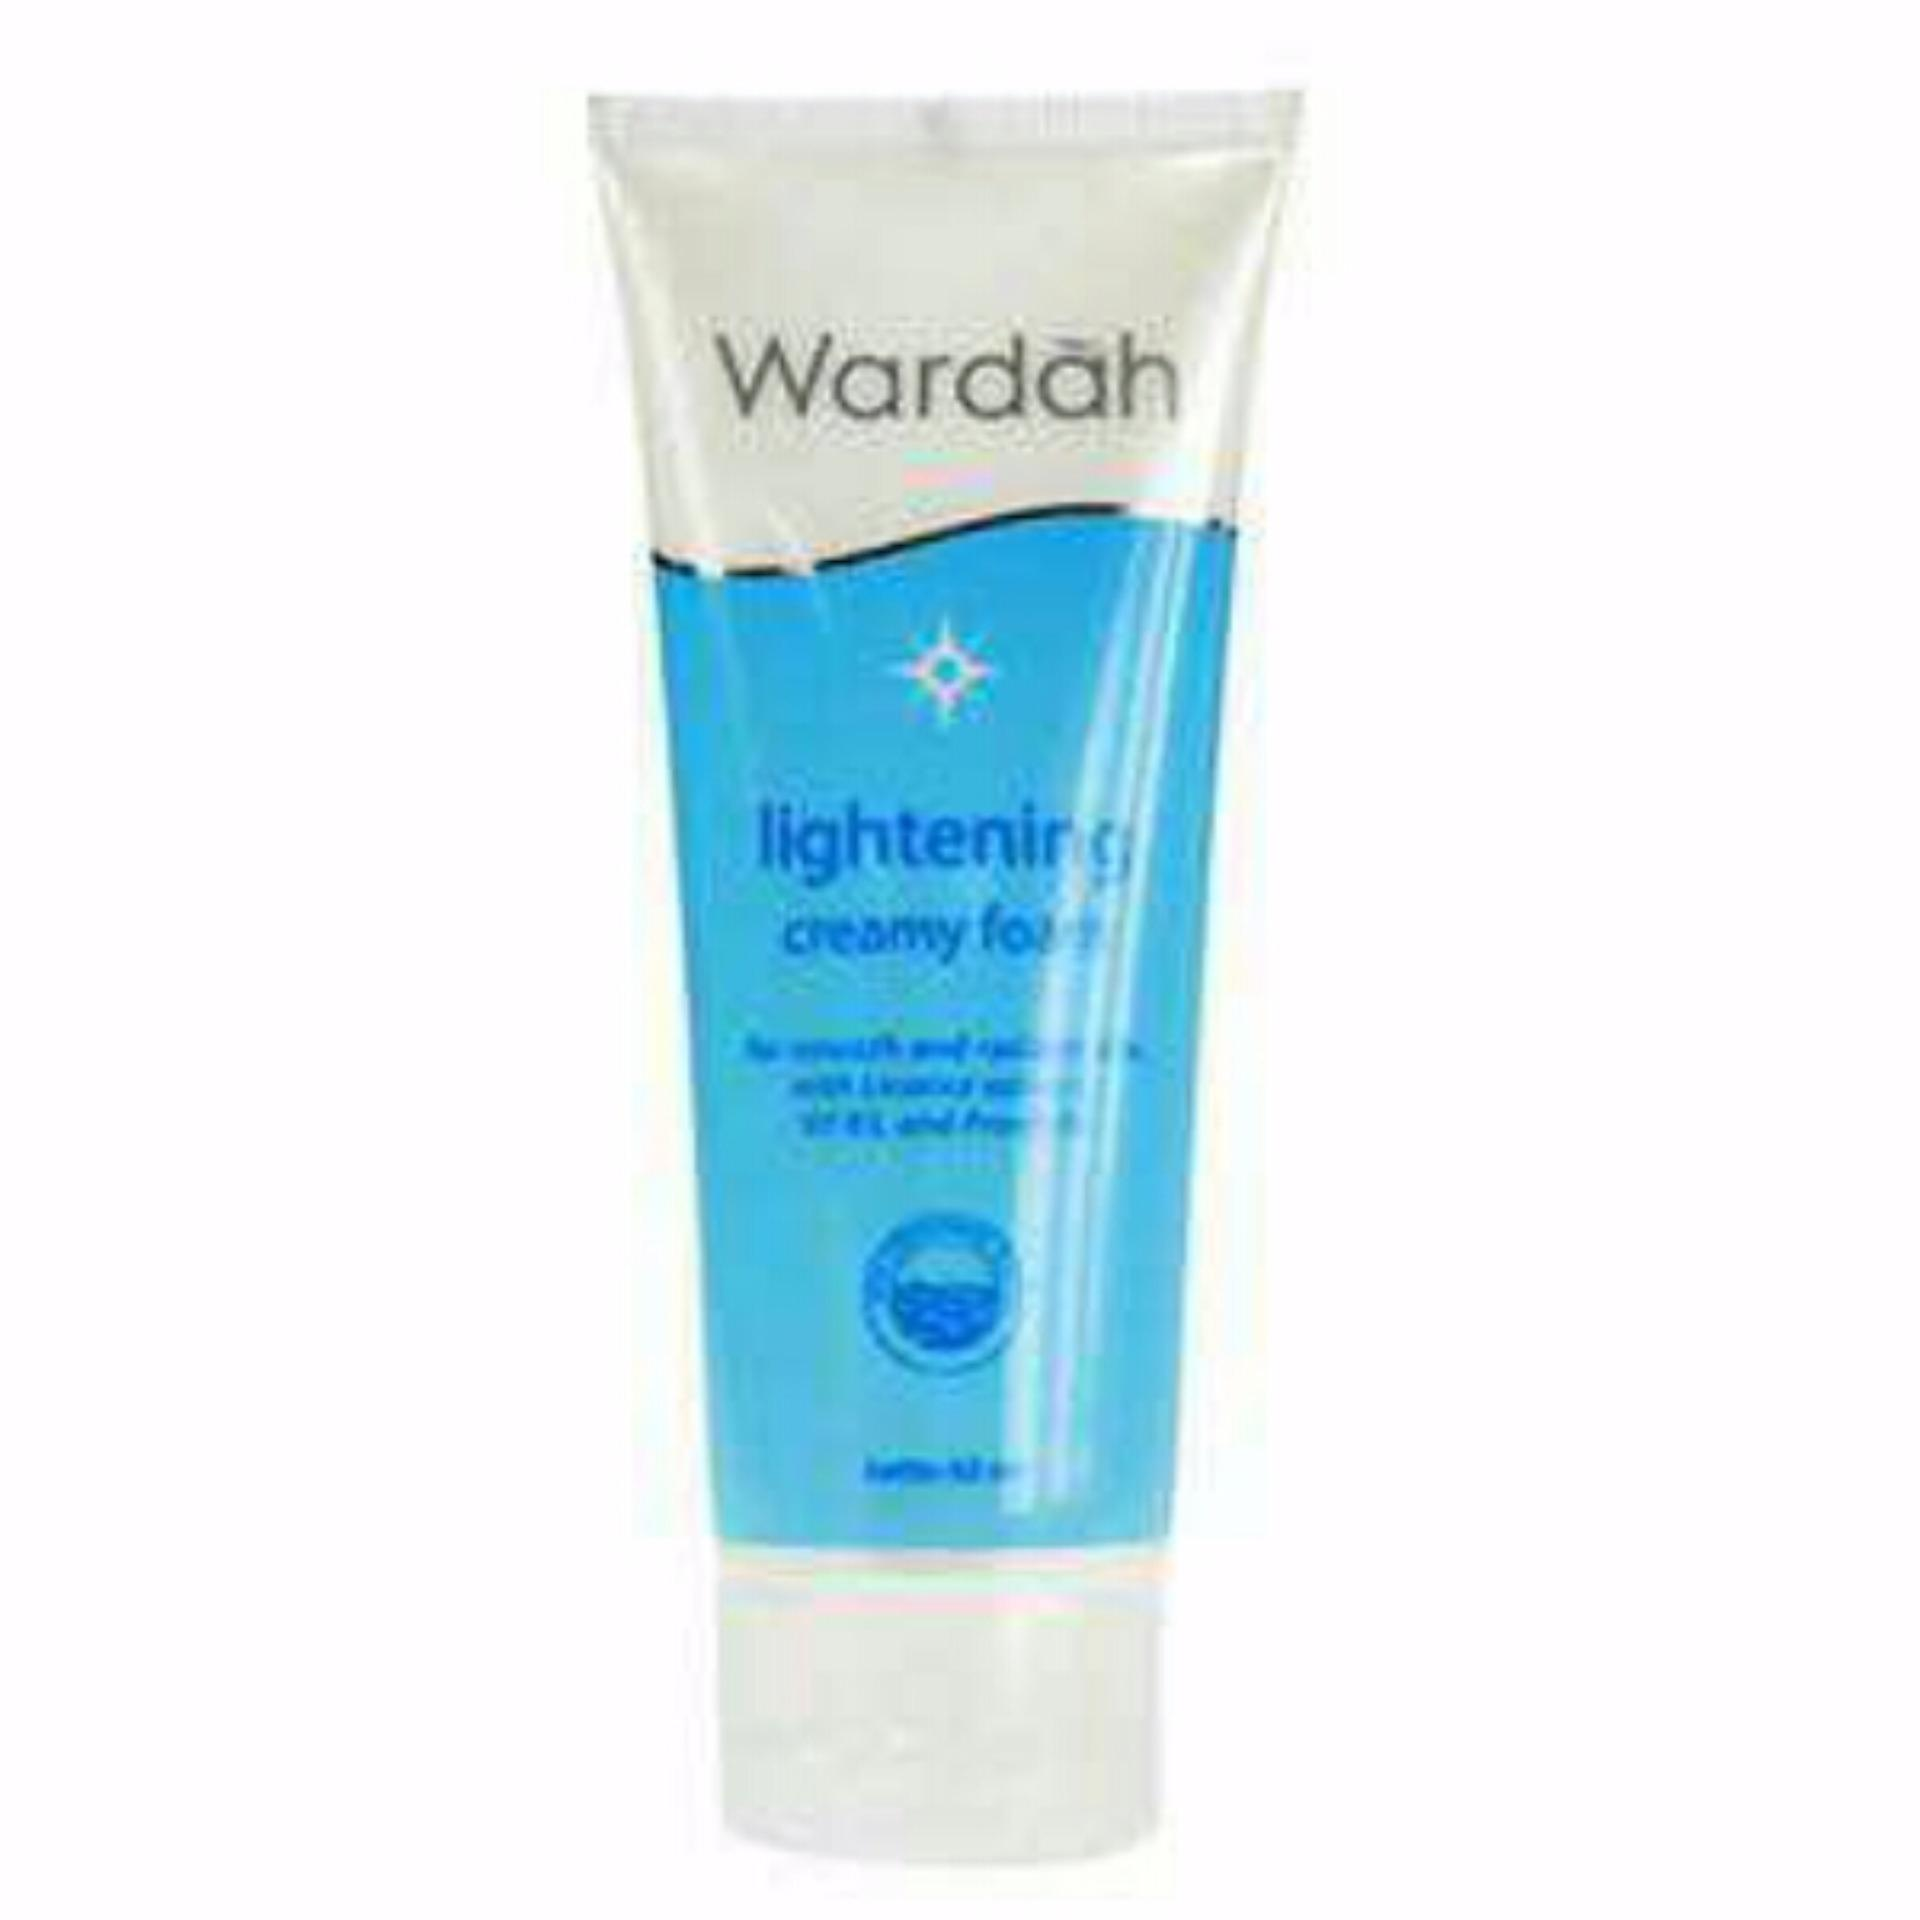 Wardah Lightening Creamy Foam - 60ml